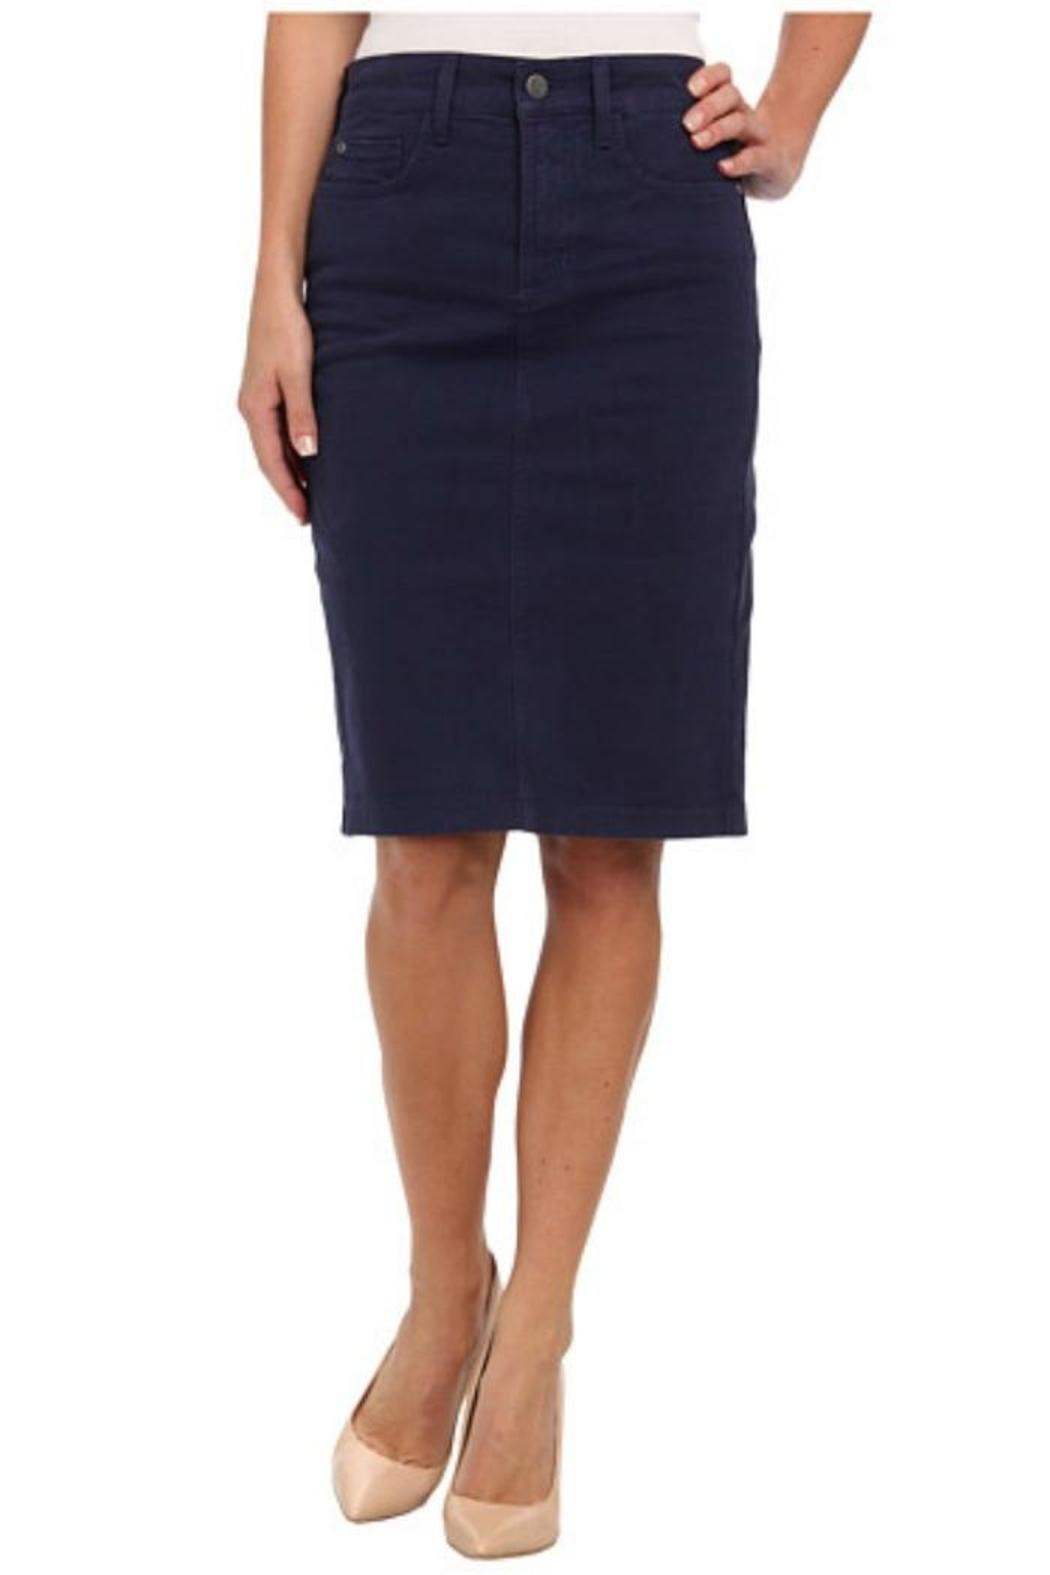 NYDJ Navy Twill Skirt - Main Image